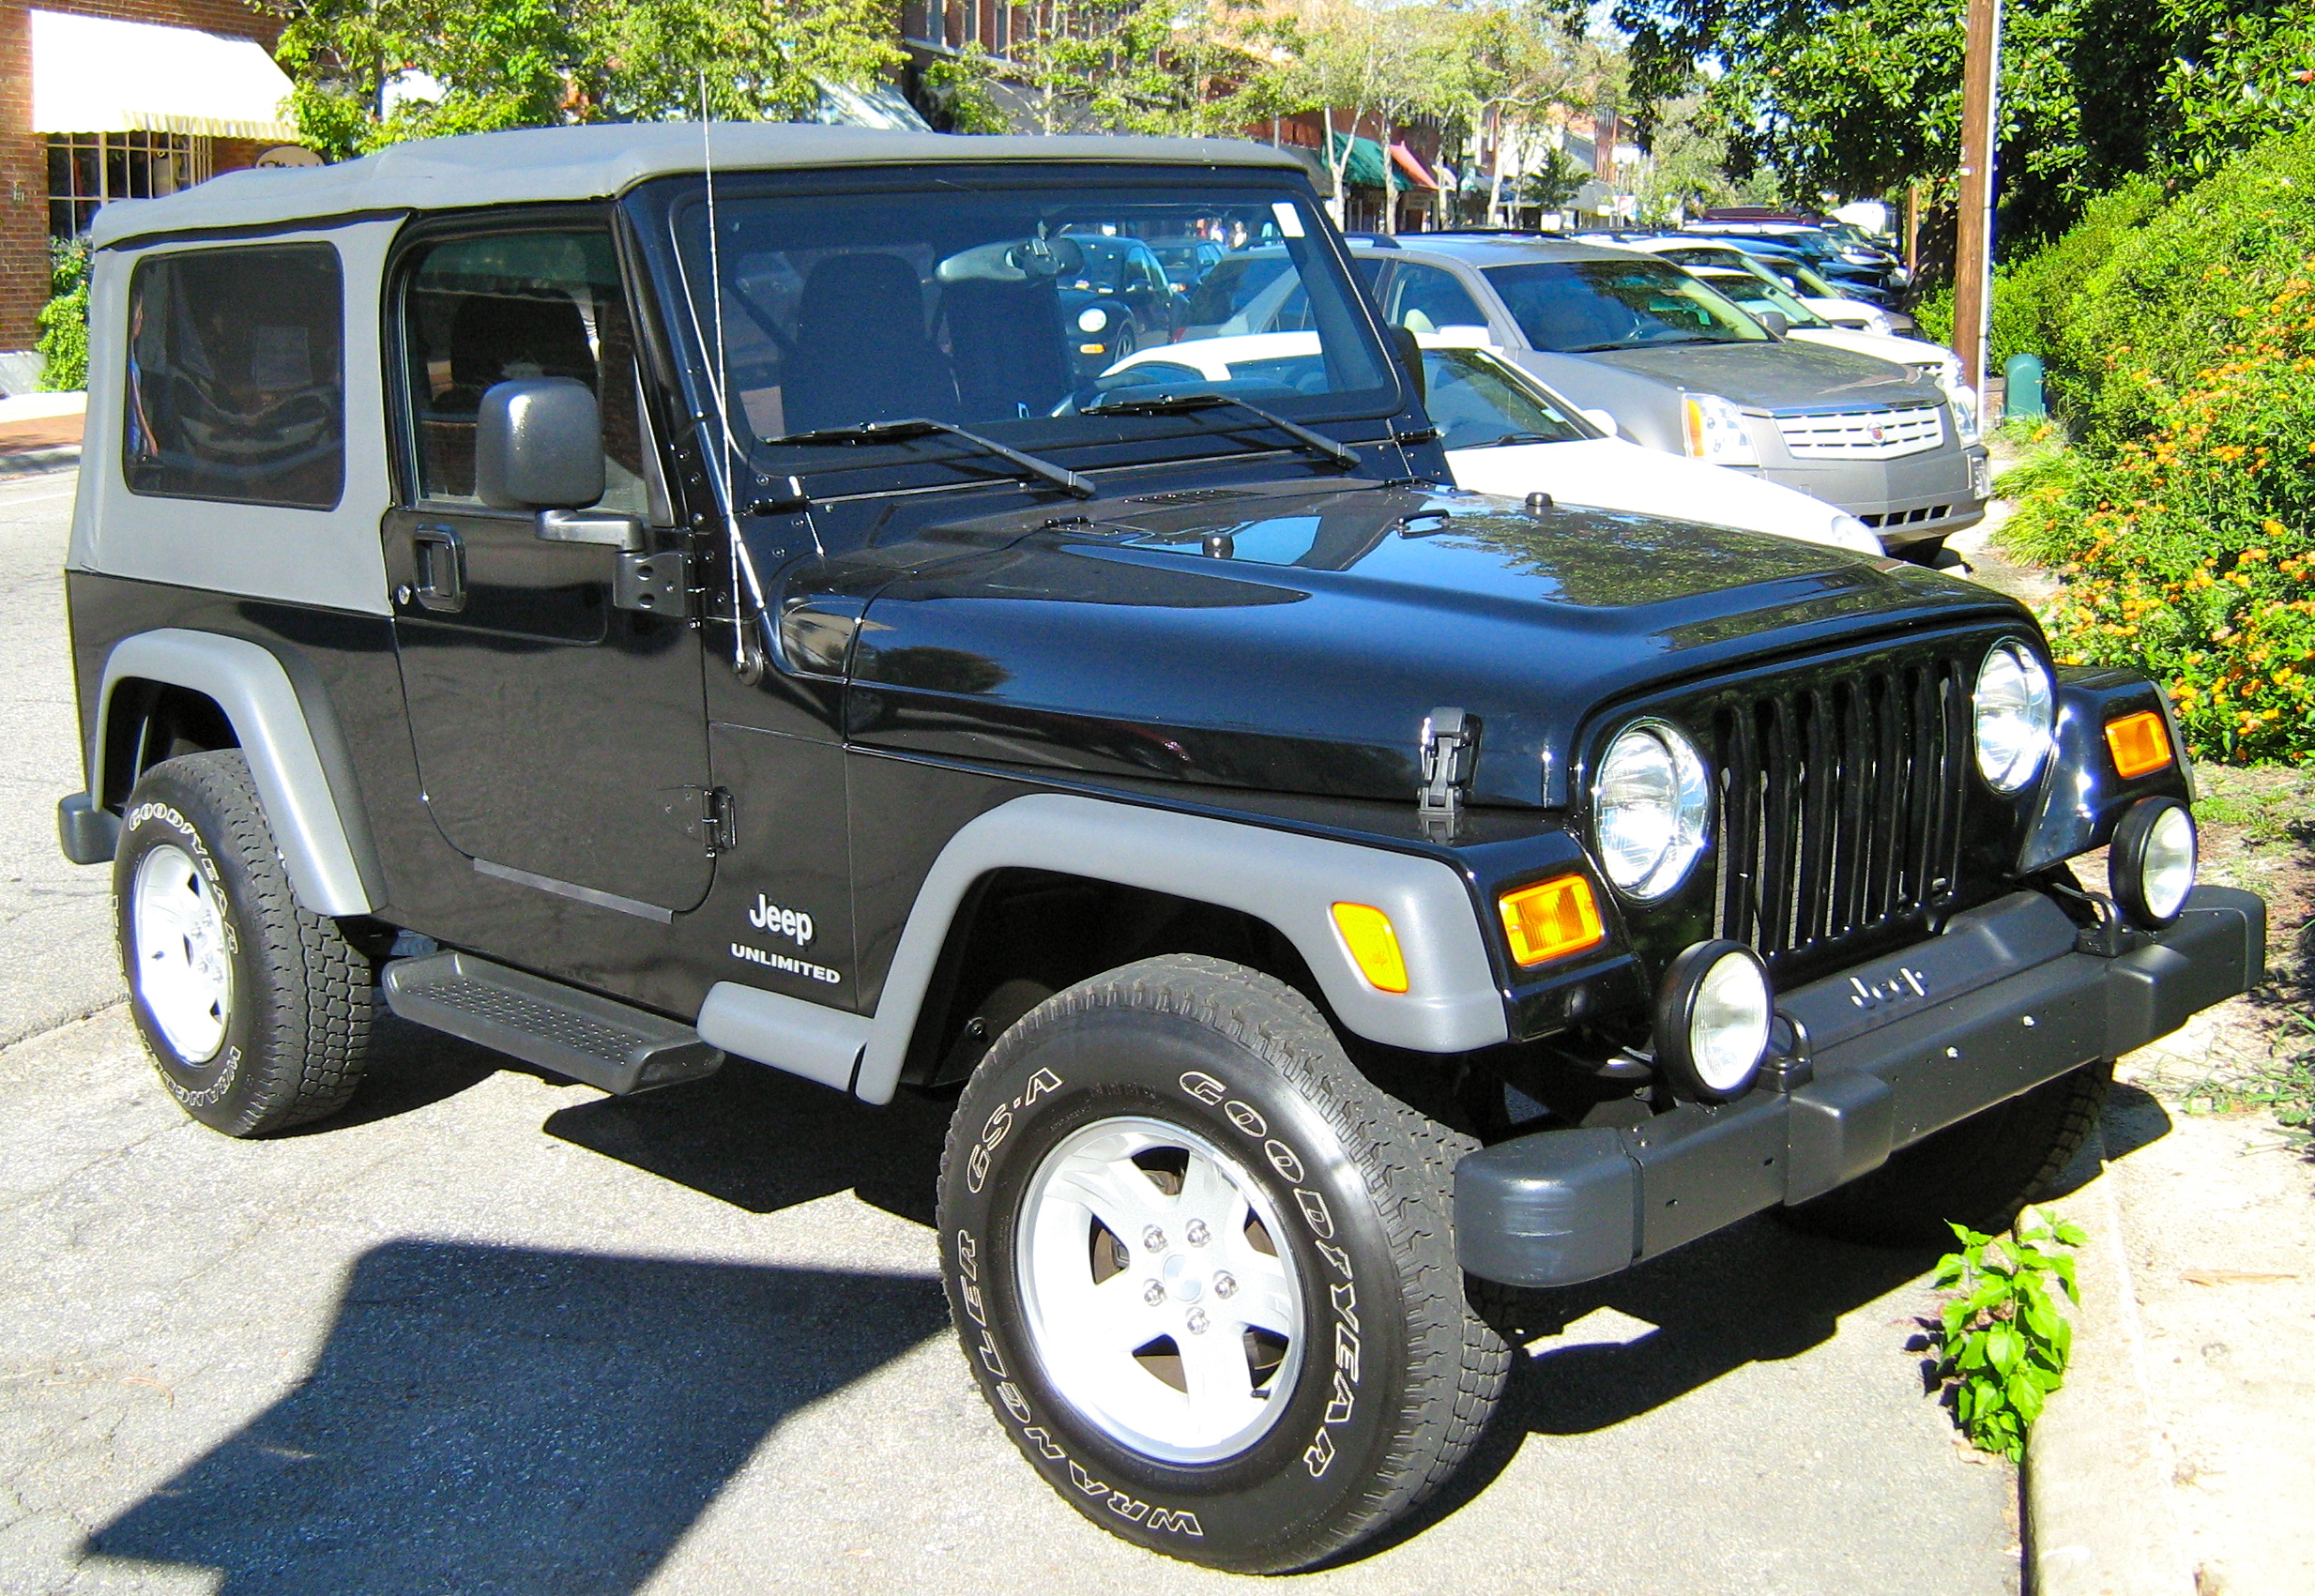 Jeep Tj Soft Top U003eu003e File:Jeep TJ Unlimited Black Soft Top SOP